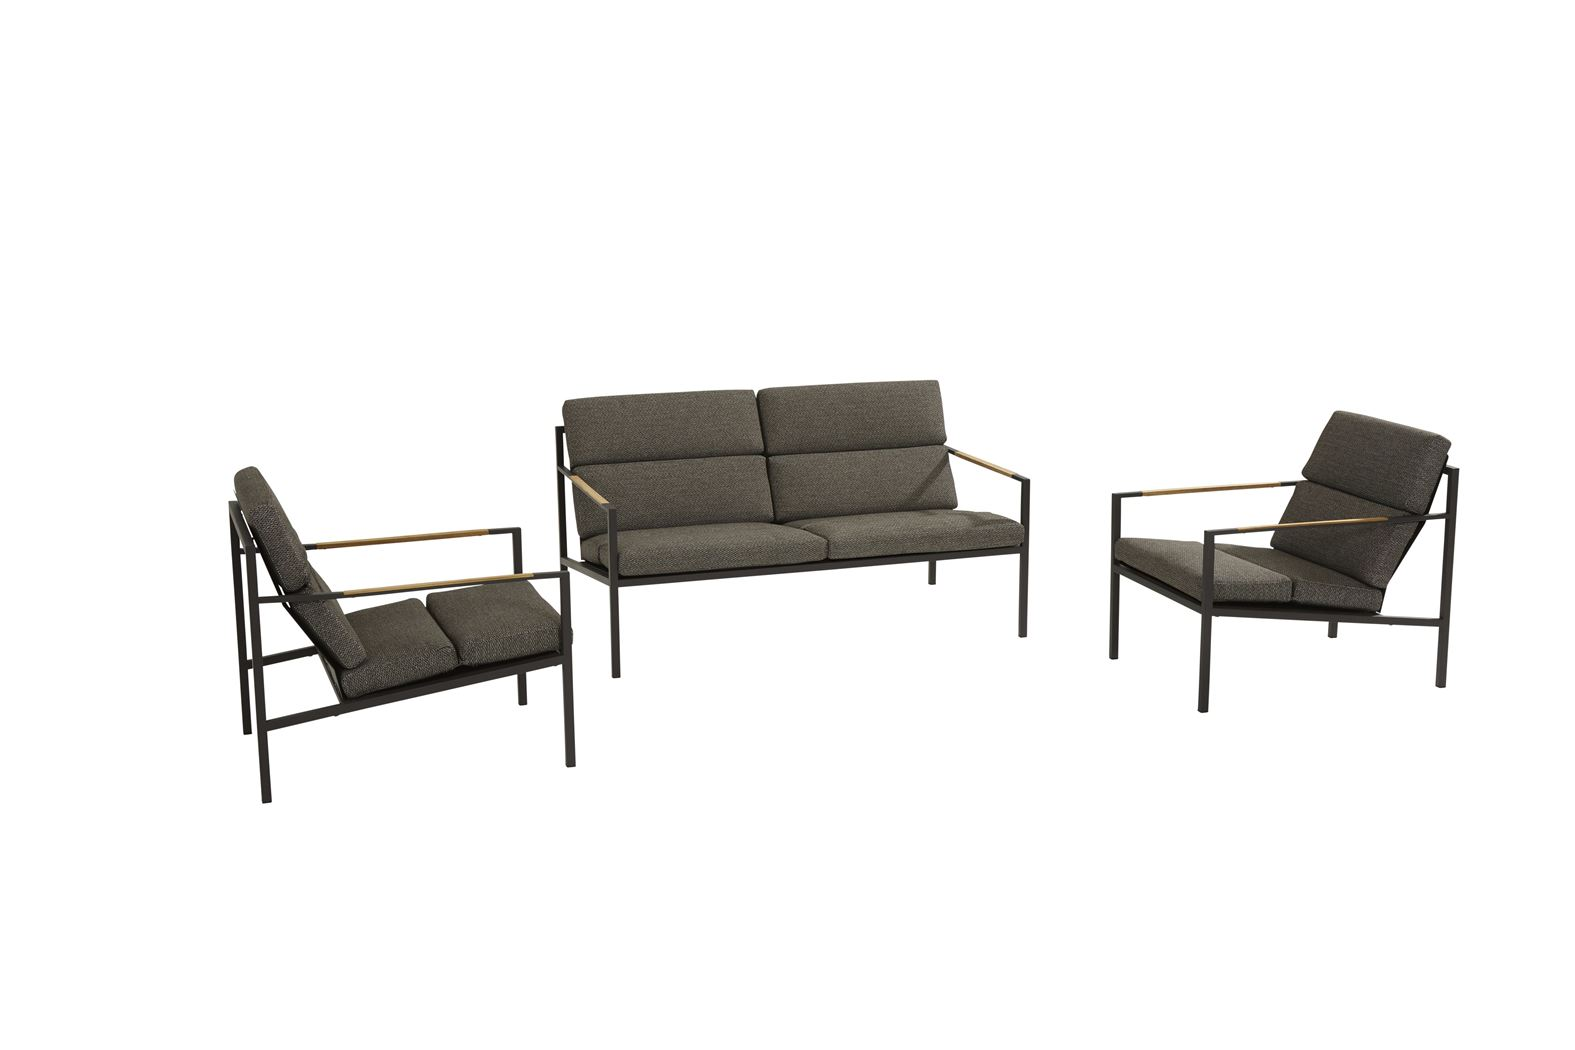 4so trentino living set : 2 x living chair + 2.5 seater bench